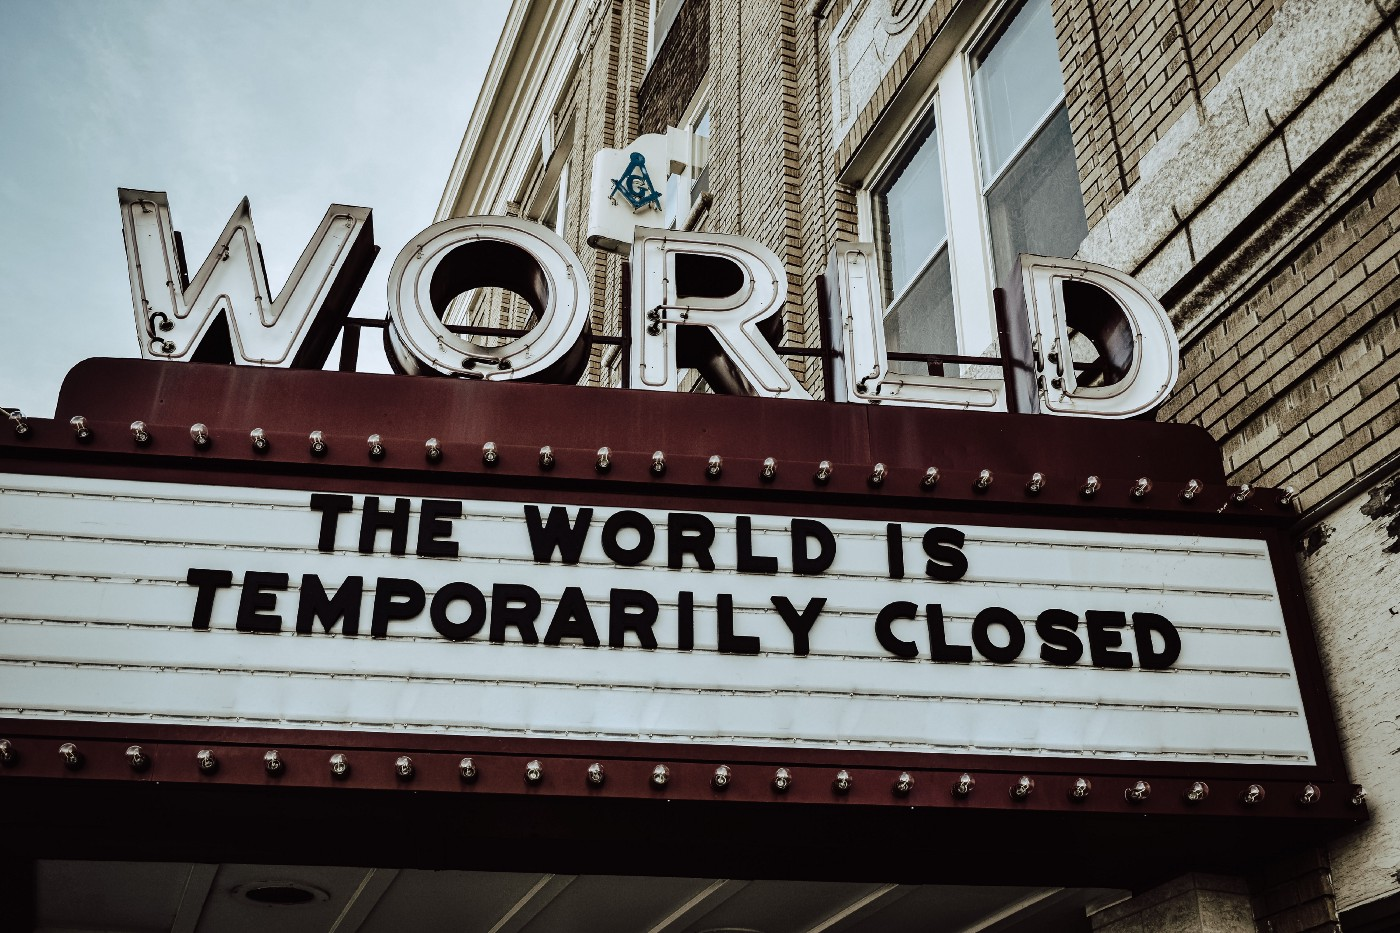 World is closed marquee